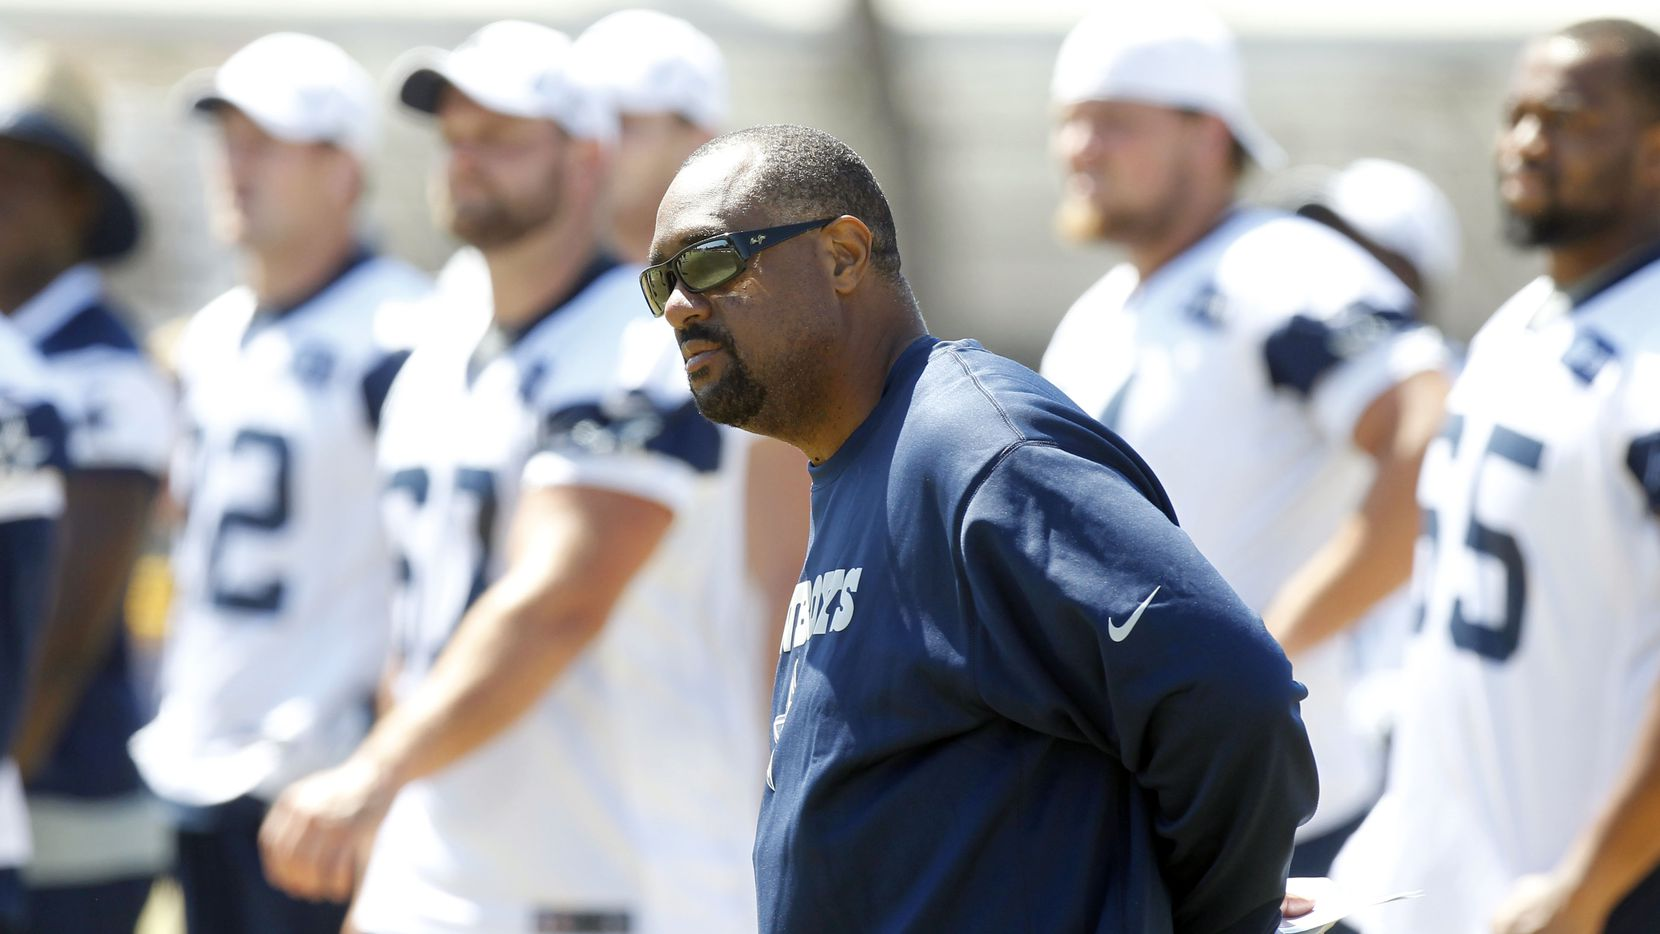 Dallas Cowboys running backs coach Skip Peete watches practice during their walk thru practice at training camp in Oxnard, CA, on Thursday, August 9, 2012.